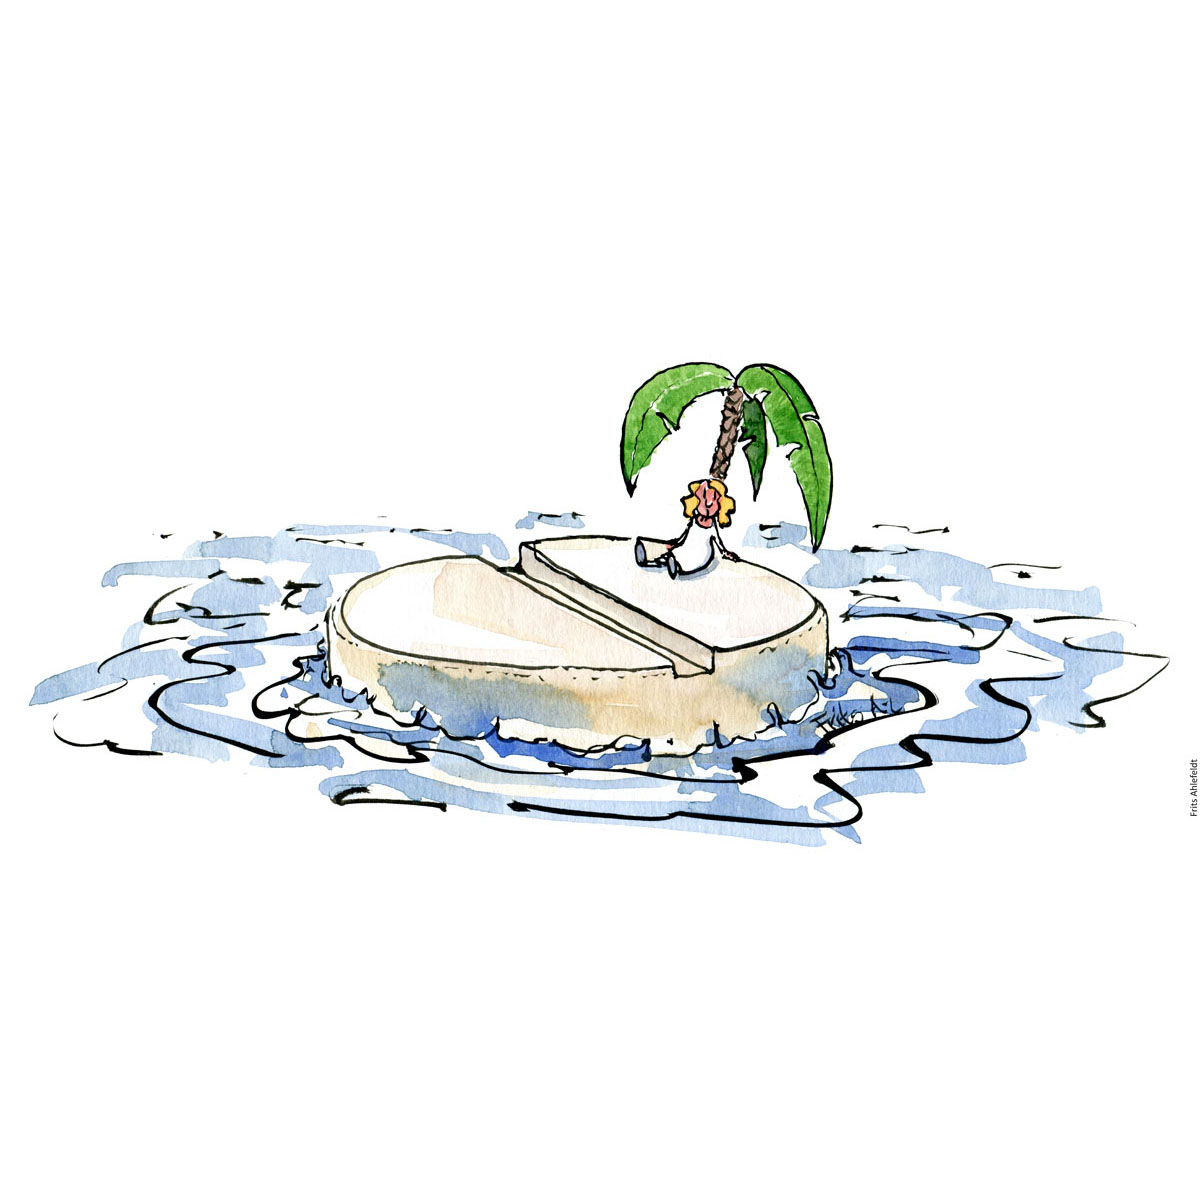 Drawing of an island made out of a pill and a lonely person sitting under a palm tree. Drugs. handmade color illustration by Frits Ahlefeldt